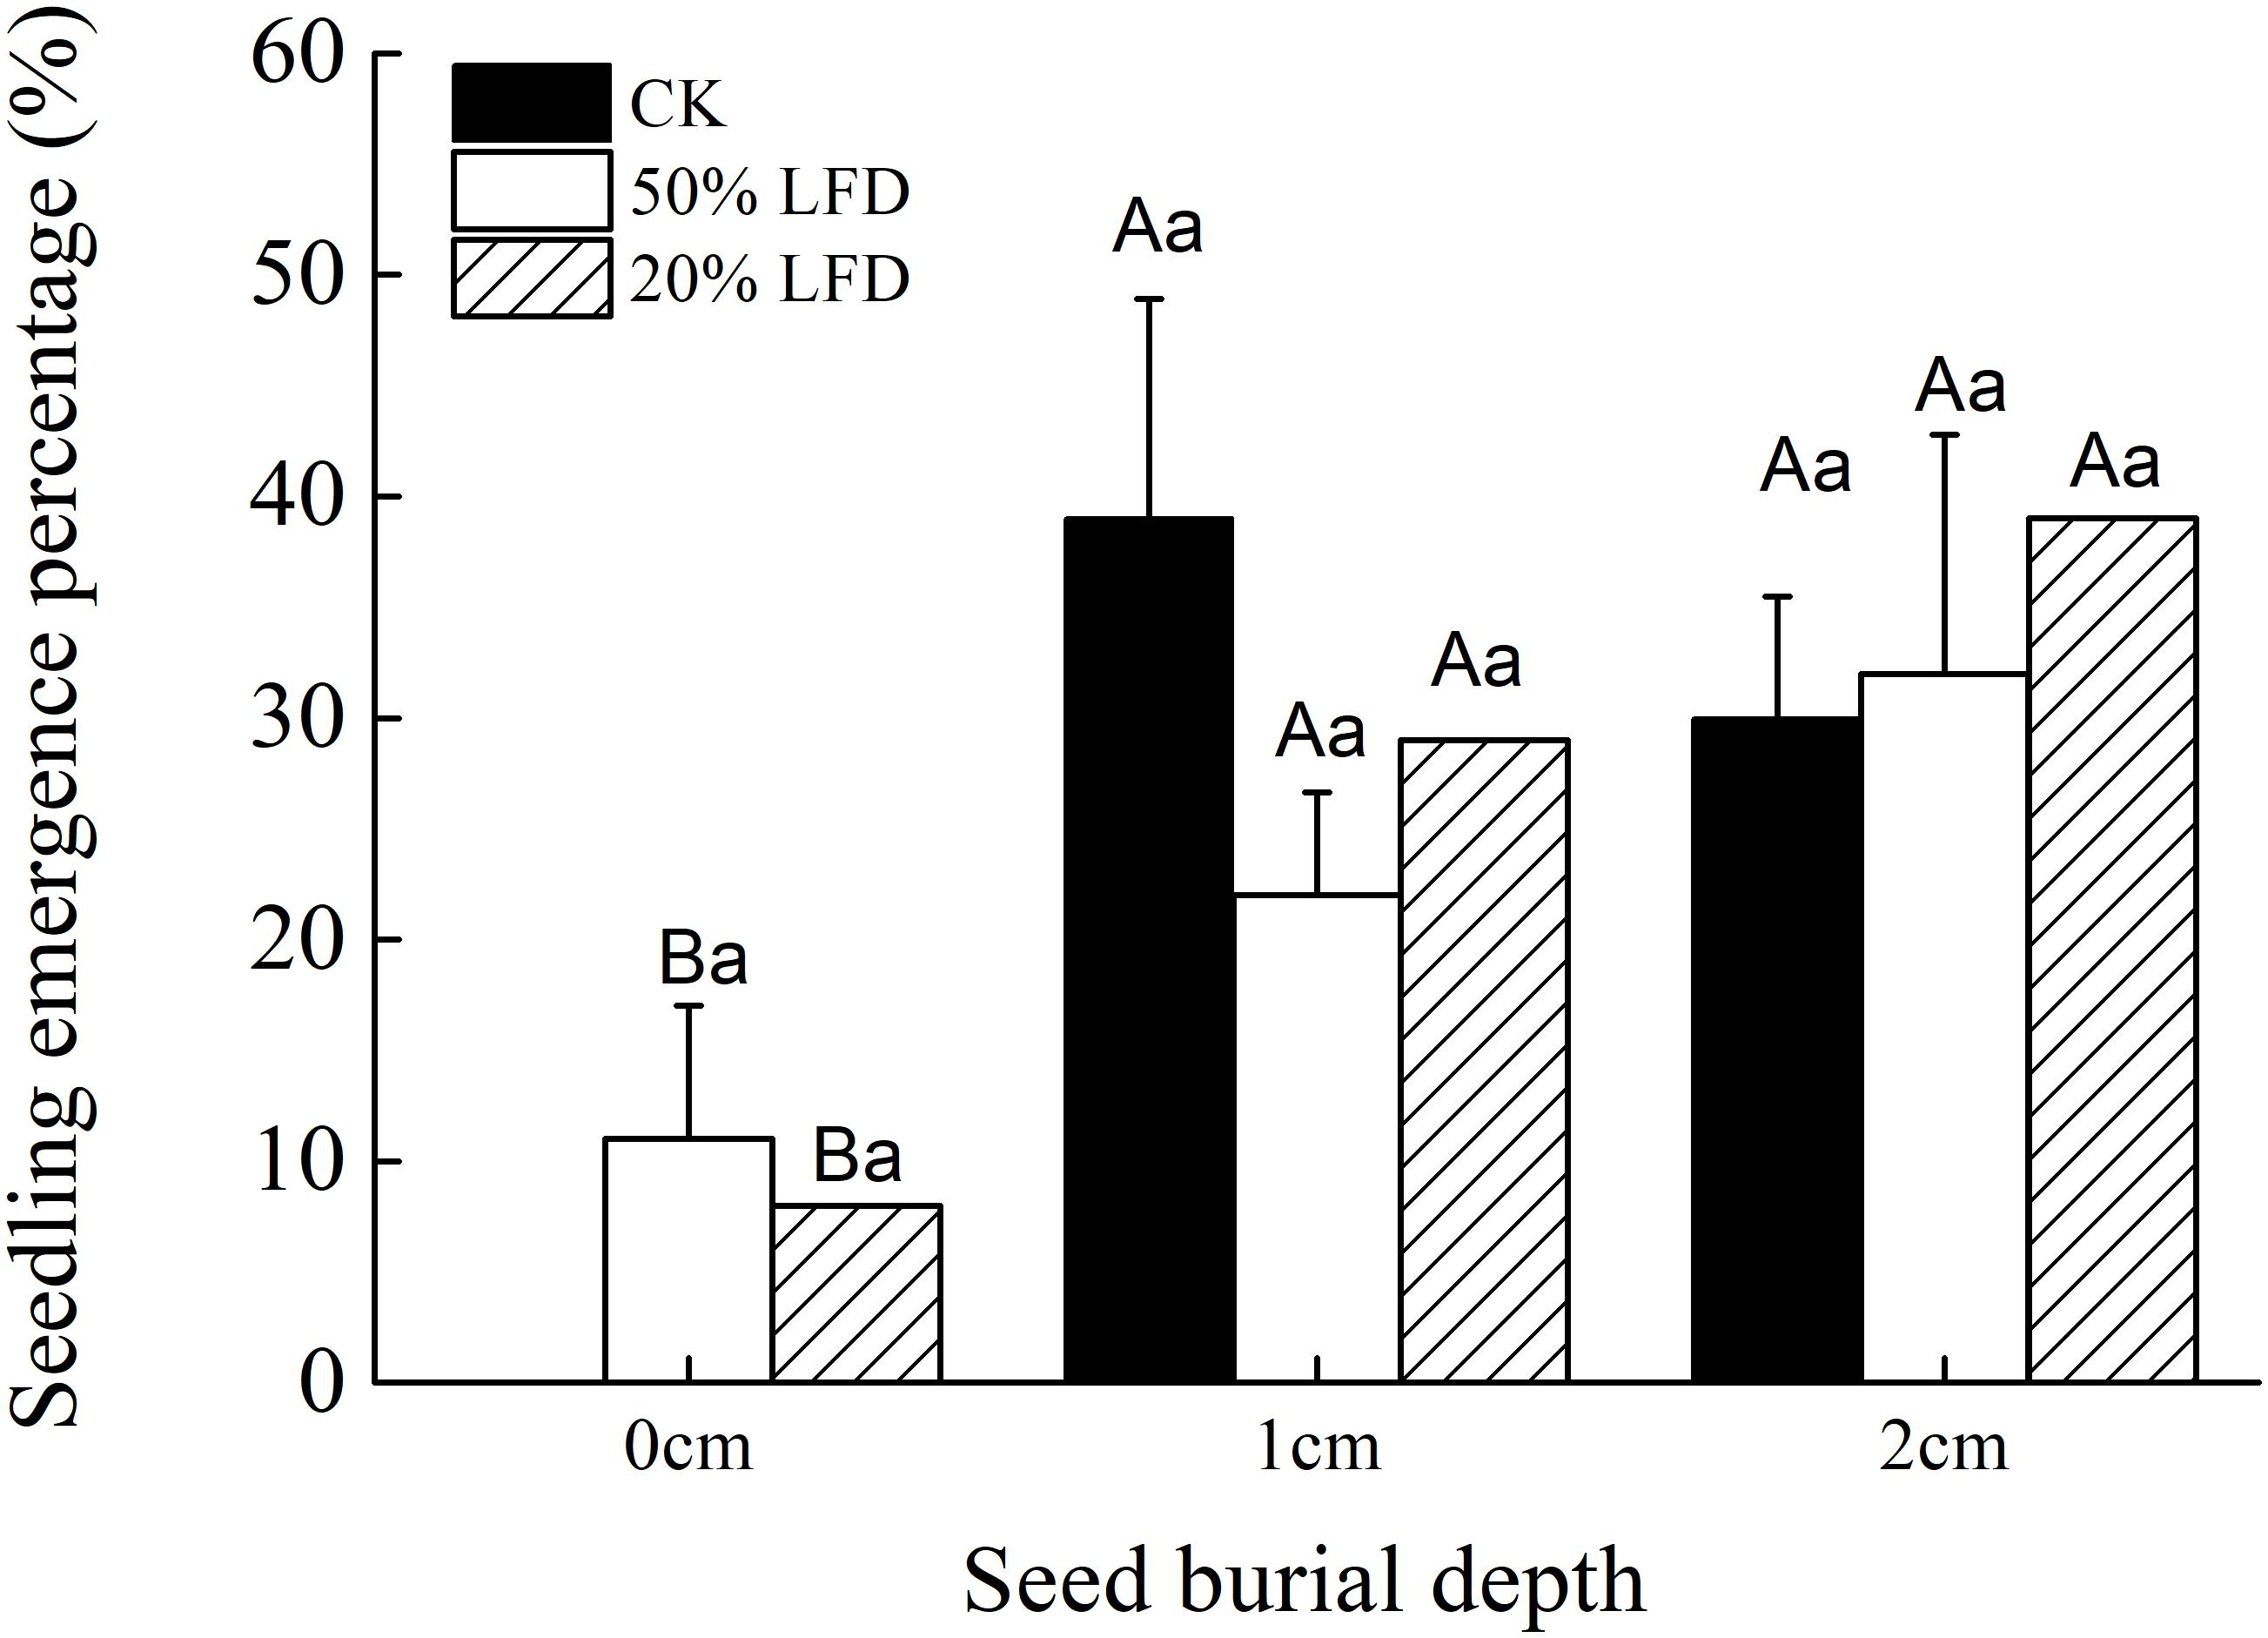 Frontiers | The Bet-Hedging Strategies for Seedling Emergence of